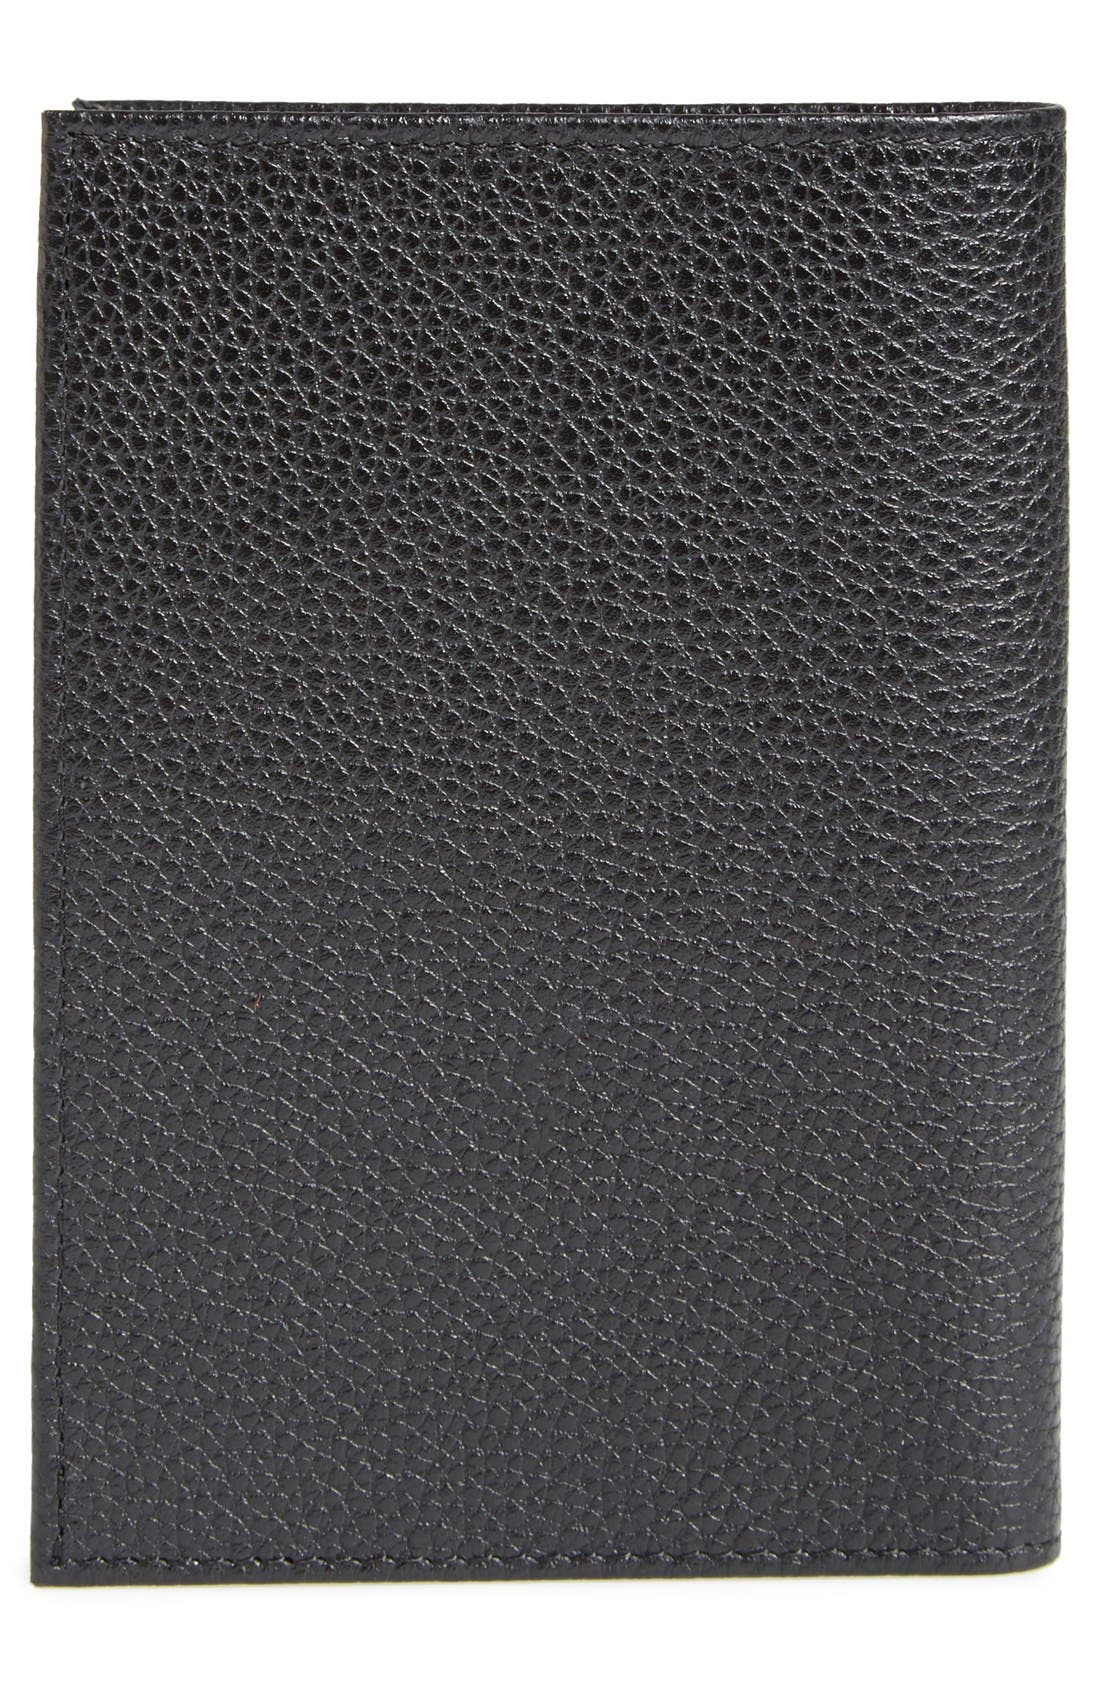 Alternate Image 2  - Longchamp Calfskin Leather Passport Case